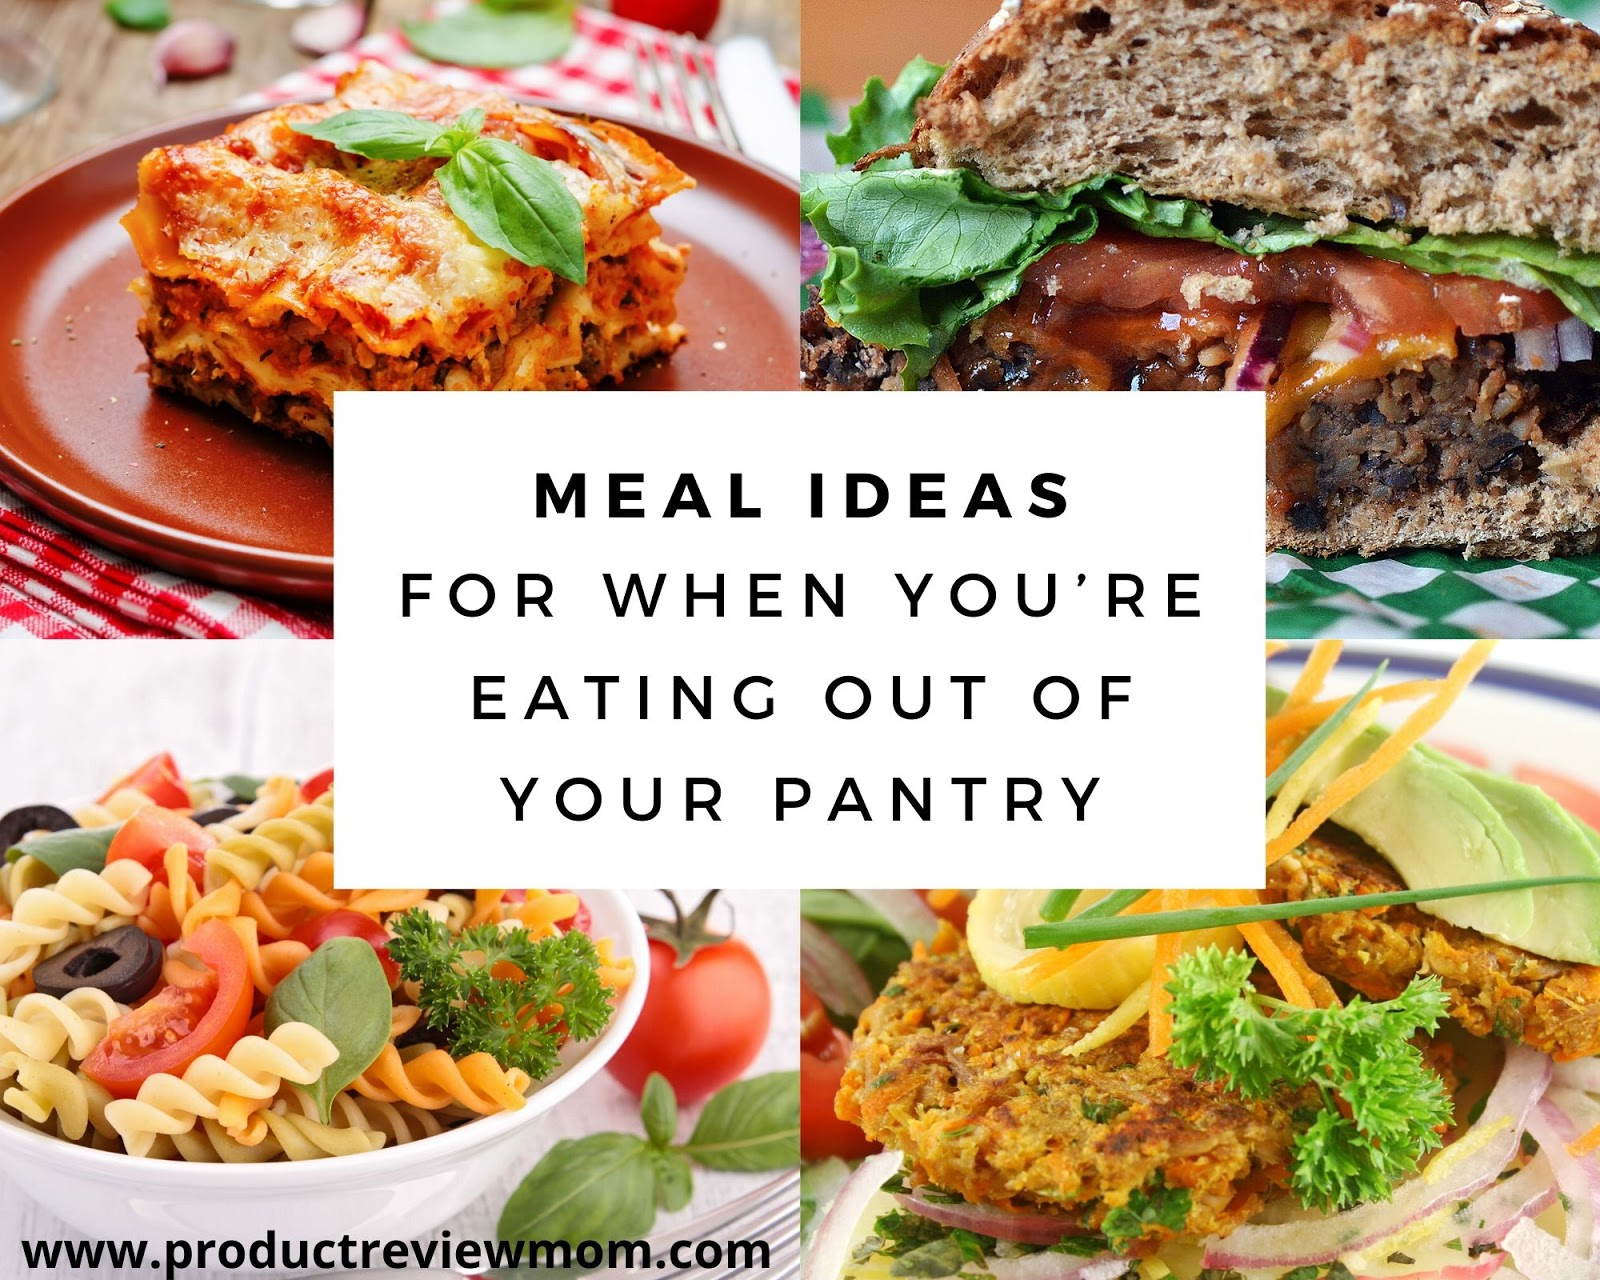 Meal Ideas for When You're Eating Out of Your Pantry